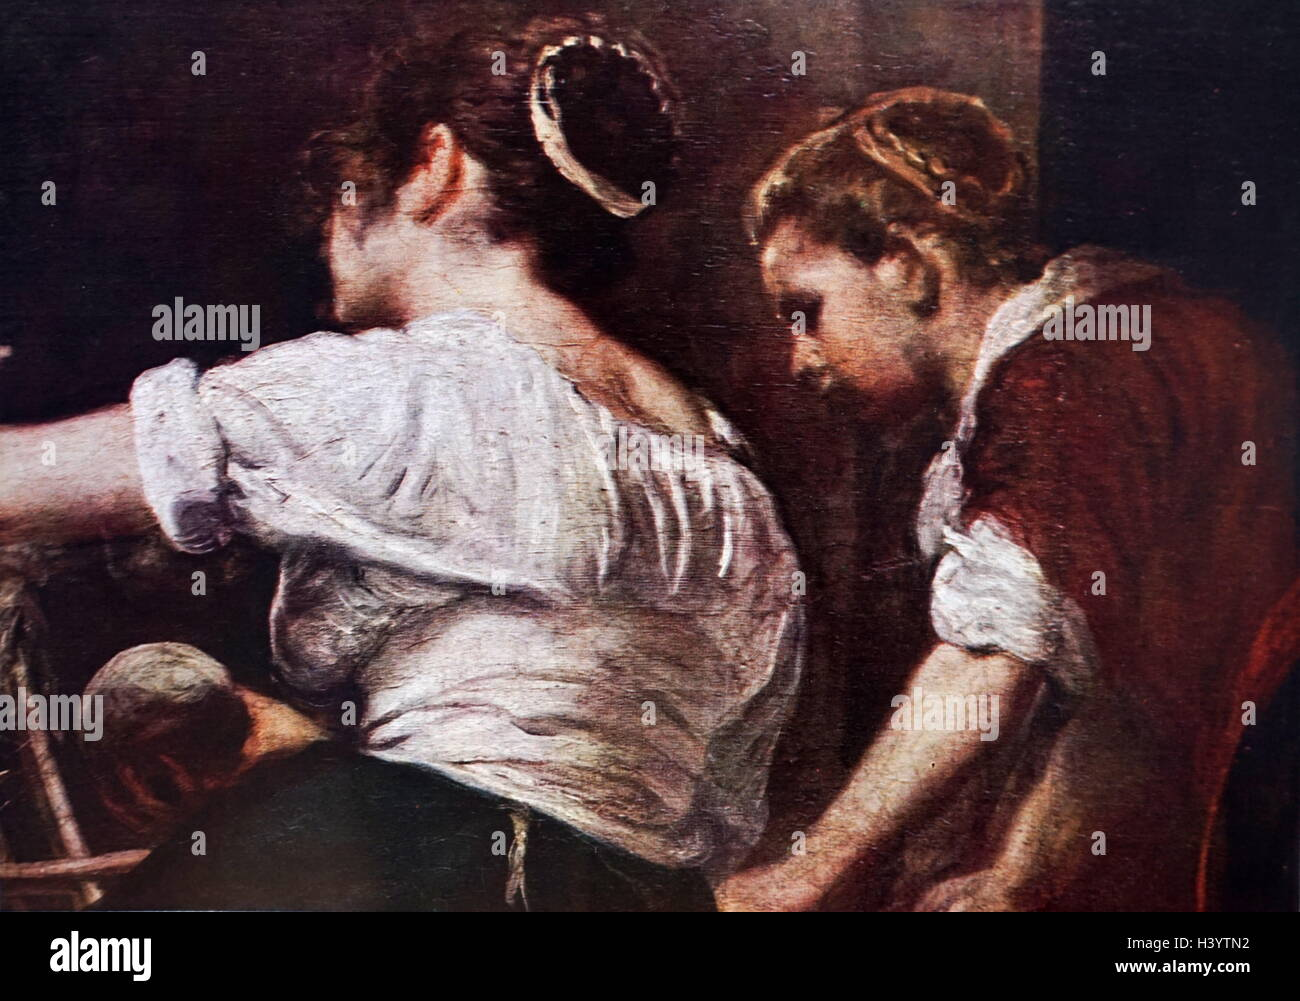 Painting titled 'Las Hilanderas (The Fable of Arachne)' by Diego Velázquez (1599-1660) a Spanish painter. - Stock Image